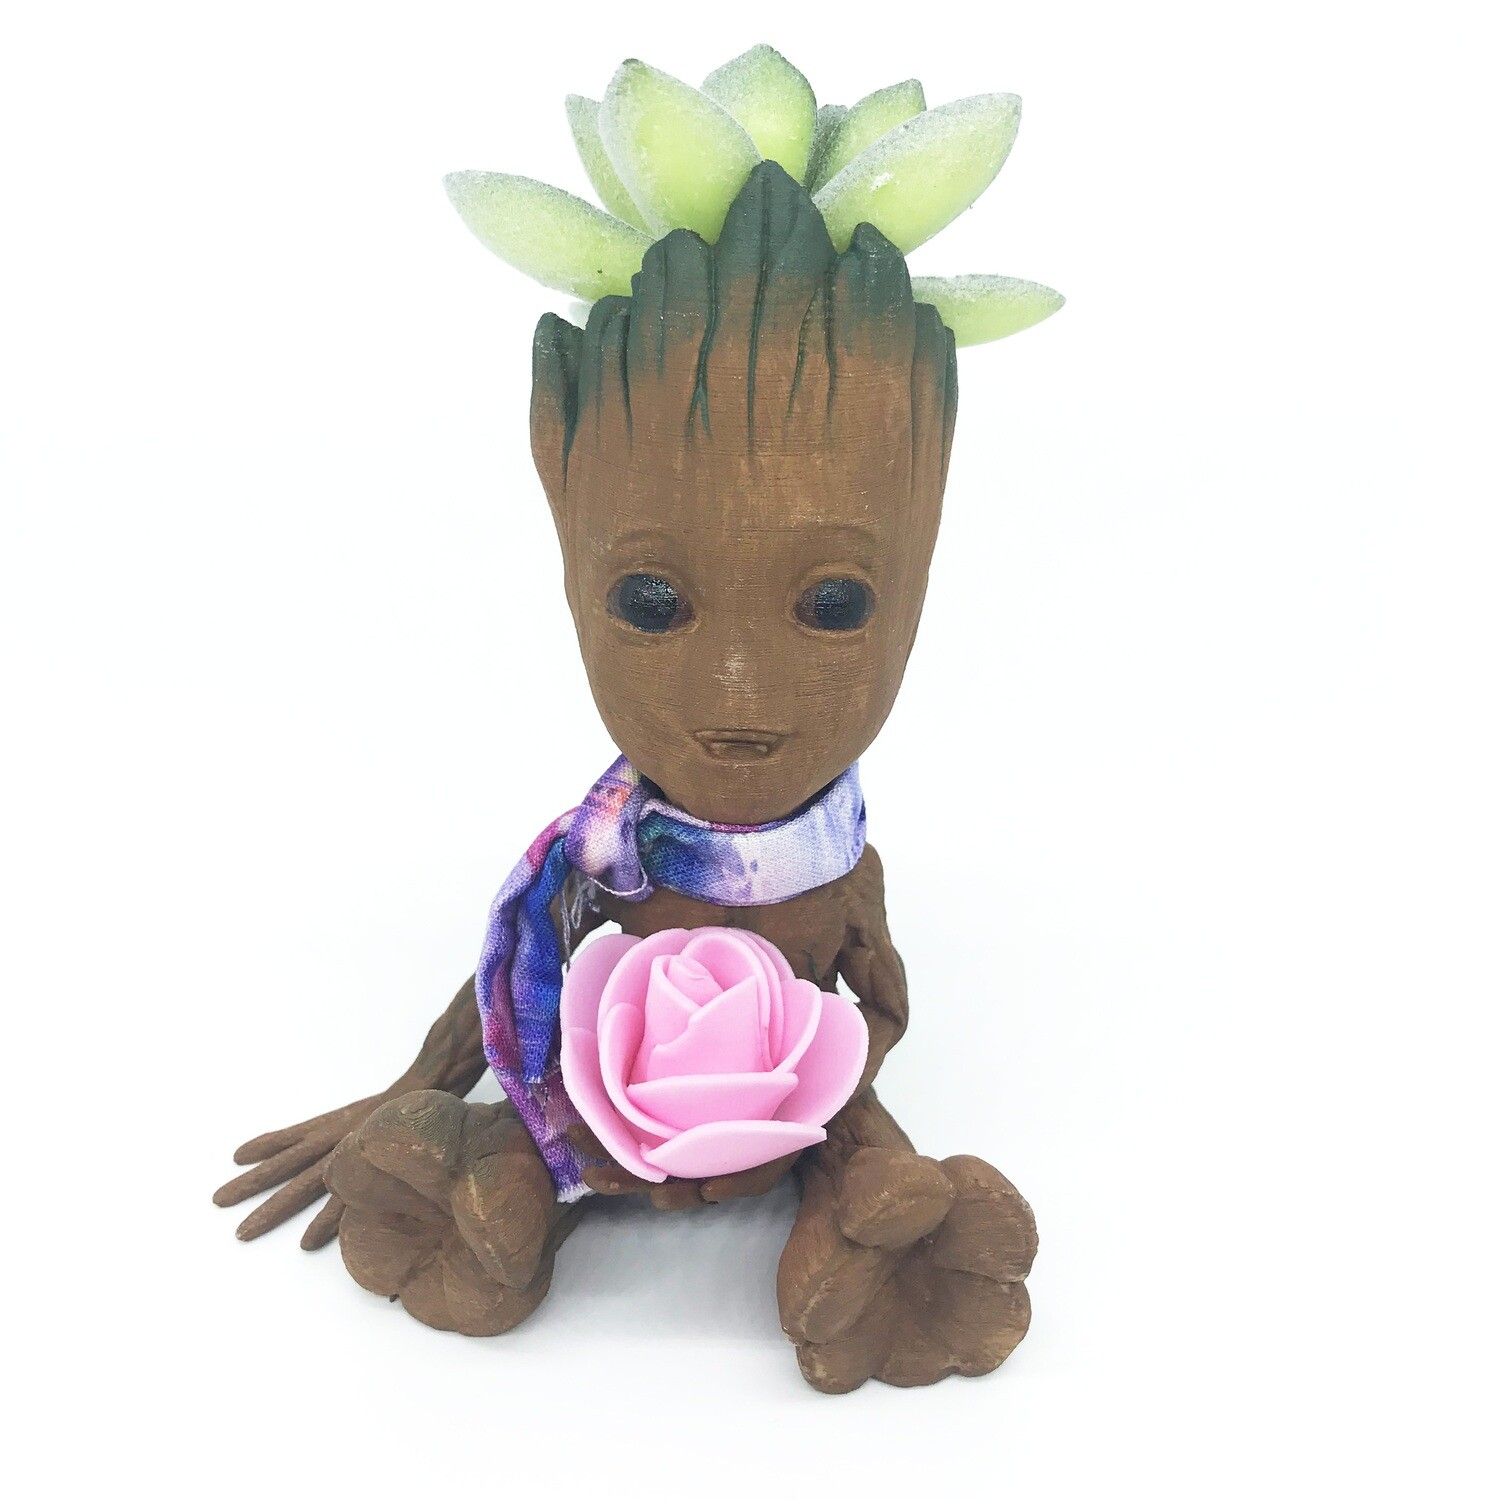 Cute & Happy Tree planter holding pink flower with scarf & fake succulent